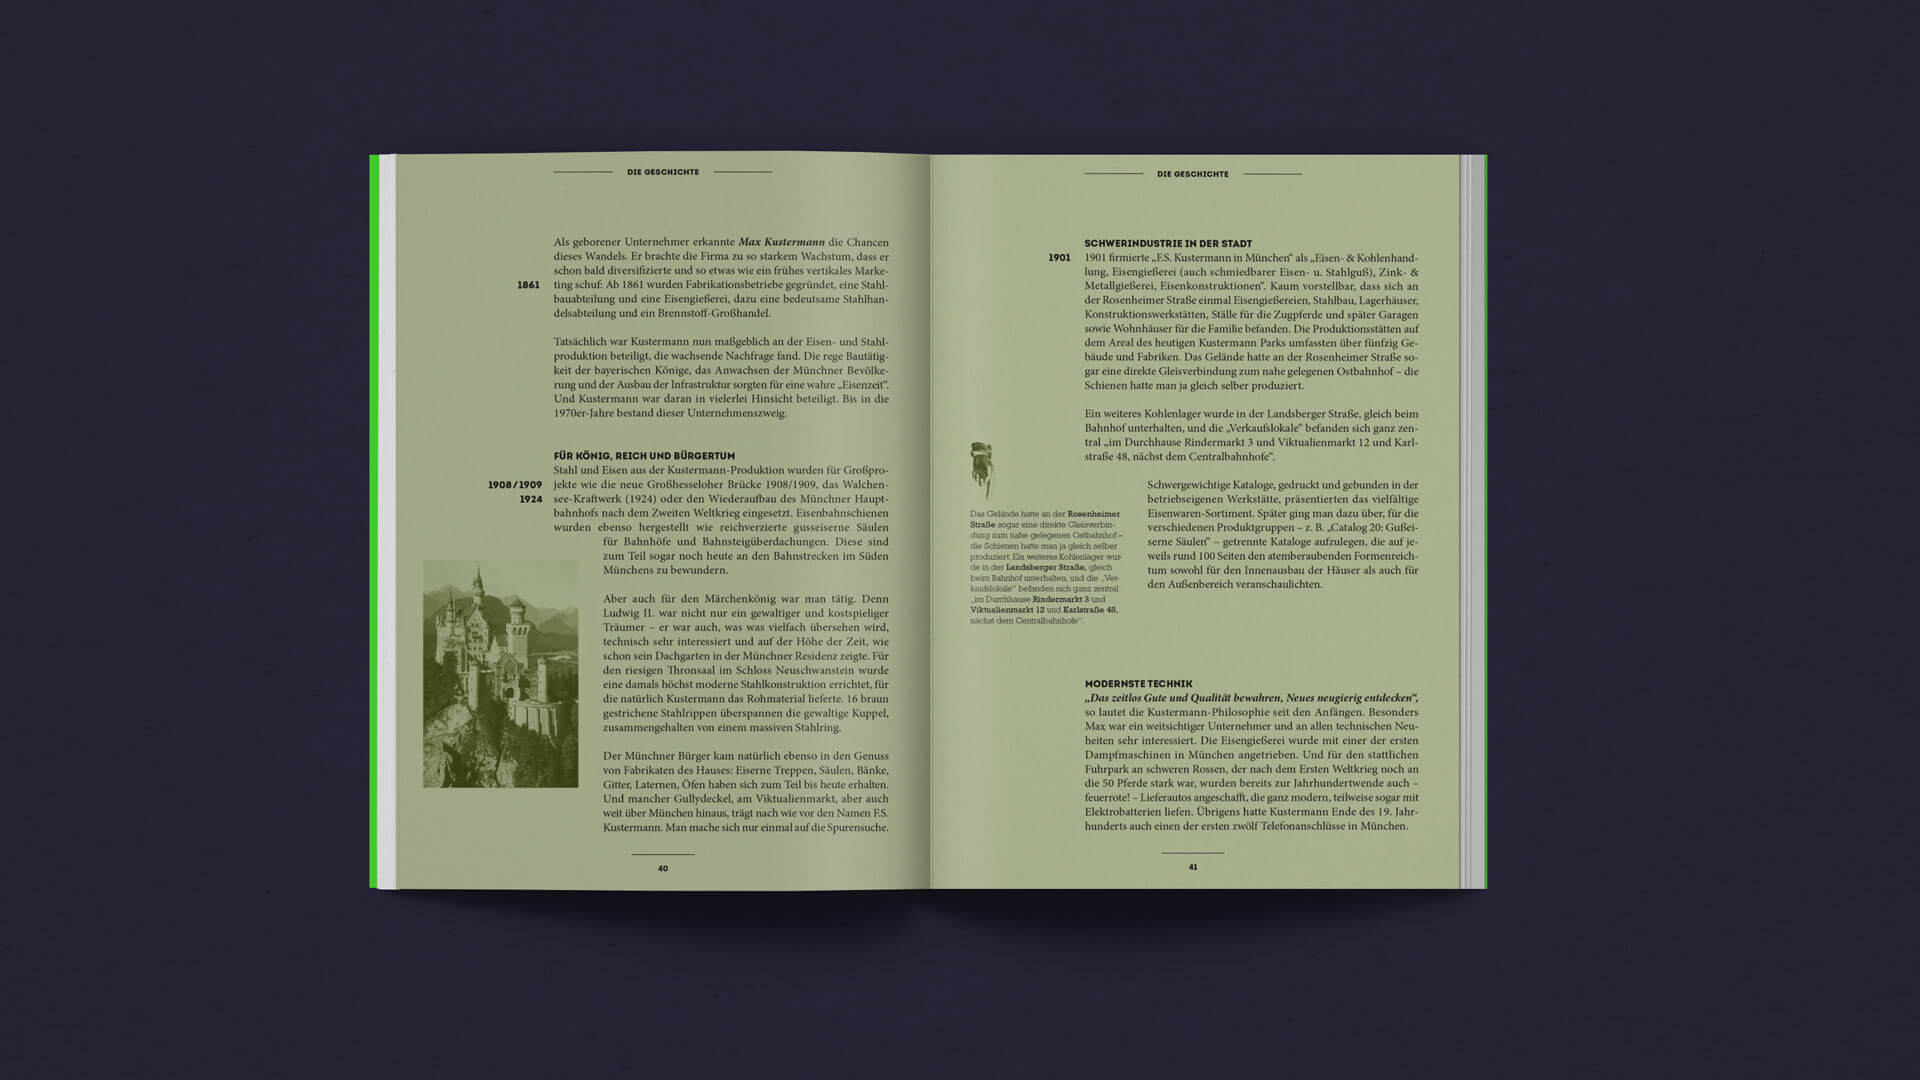 Text Spread of the History Chapter in the Kustermann Brochure